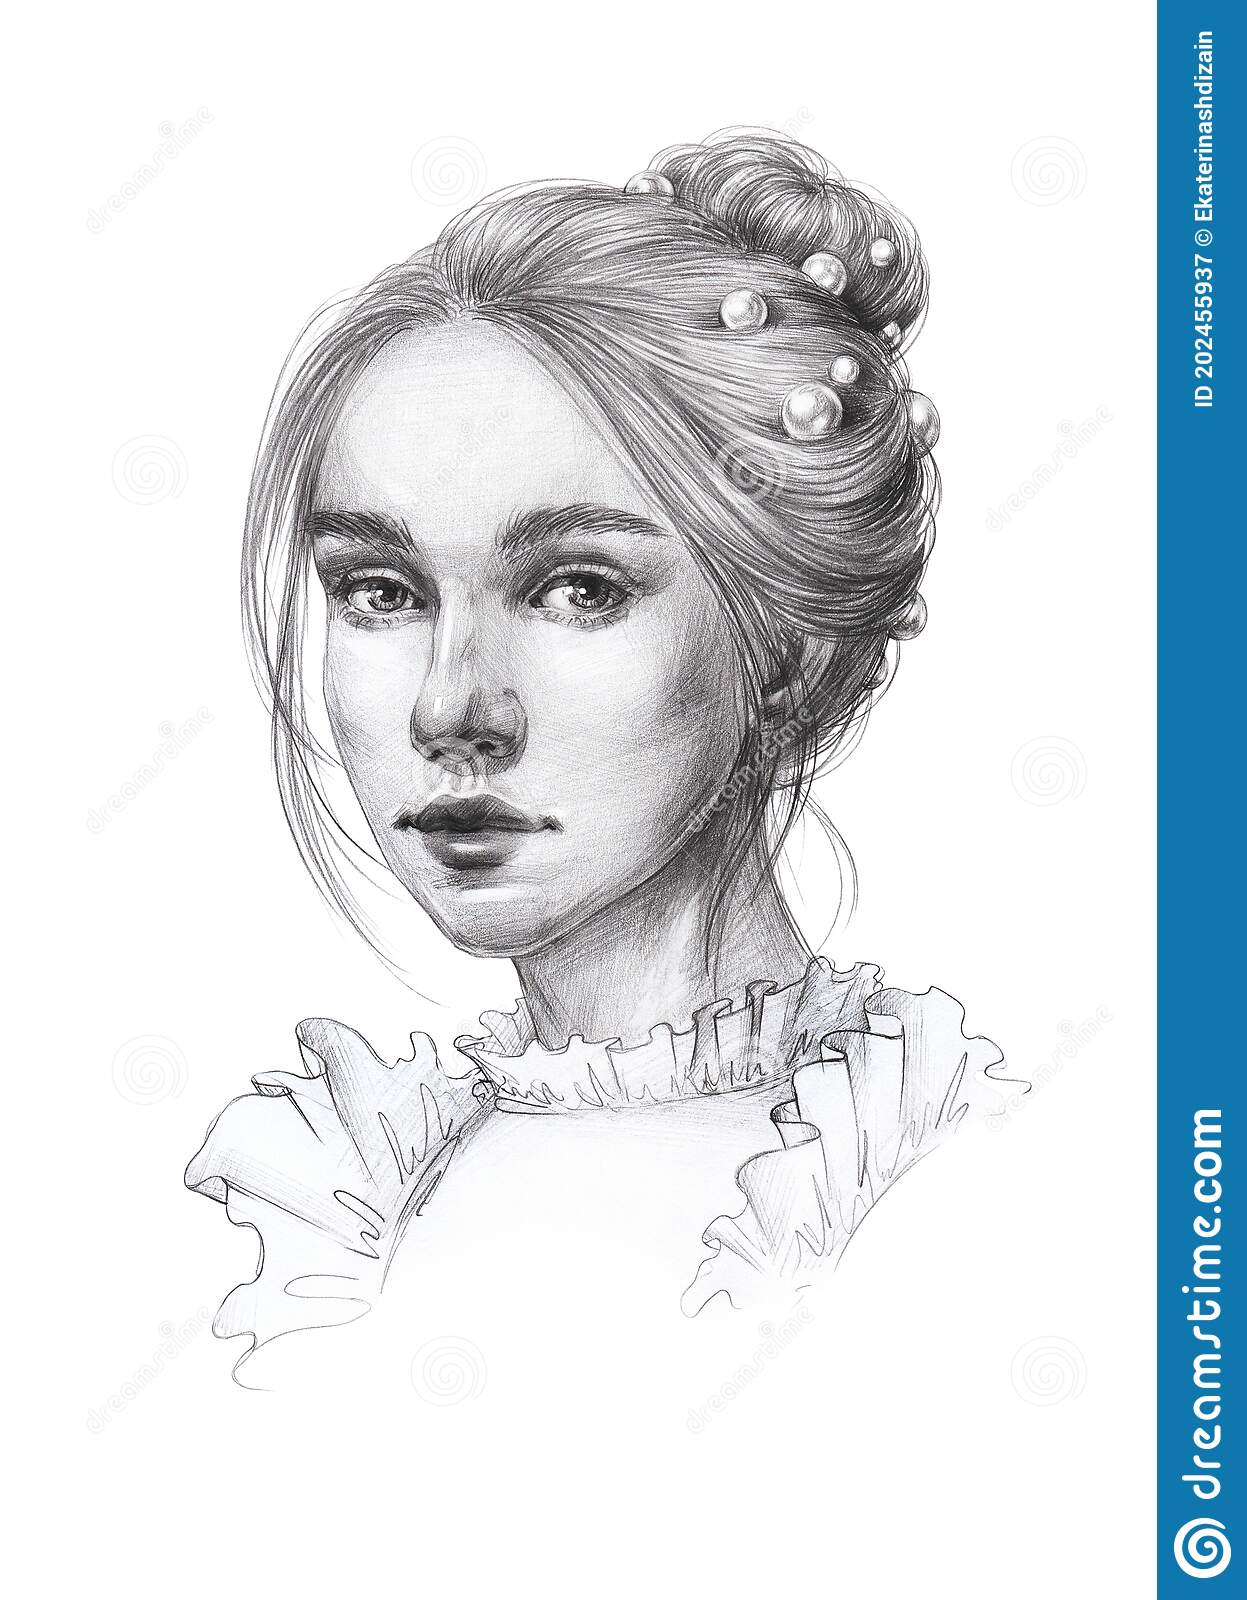 2 183 pencil sketch beautiful girl photos free royalty free stock photos from dreamstime